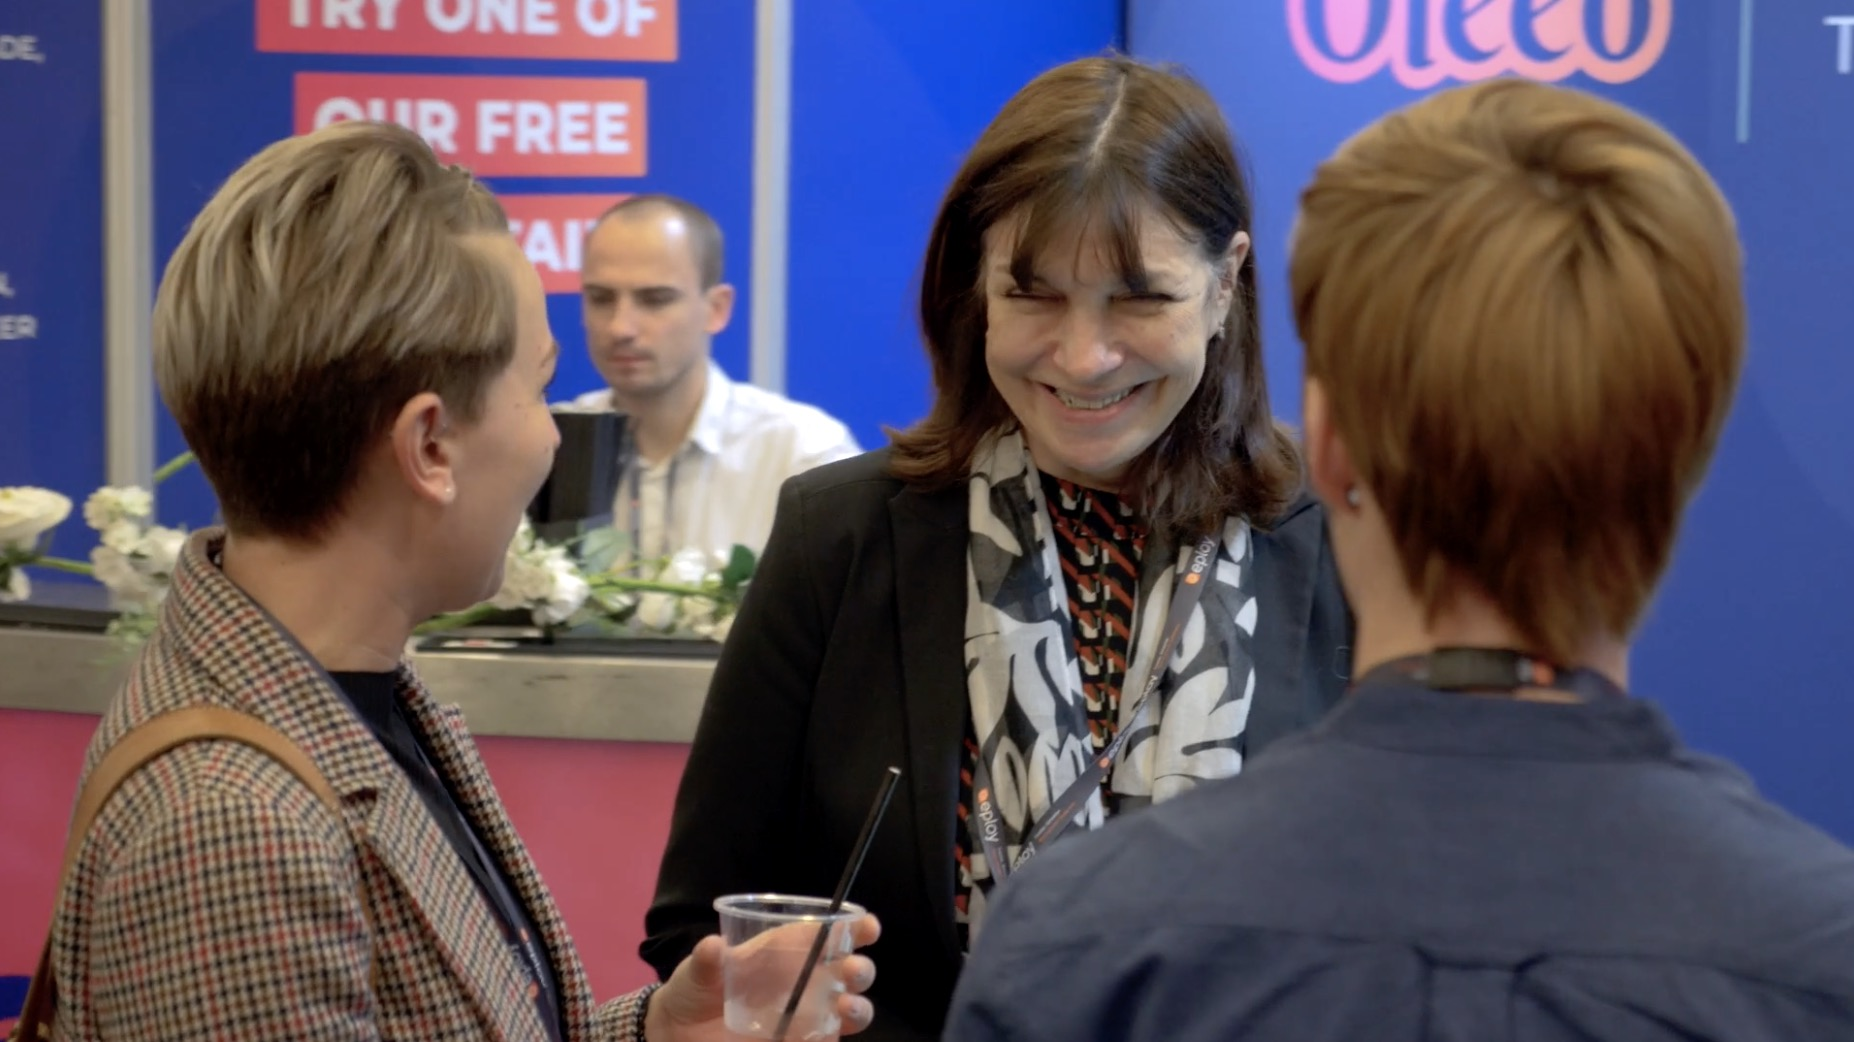 Exhibiting at a trade show can be great for your business.